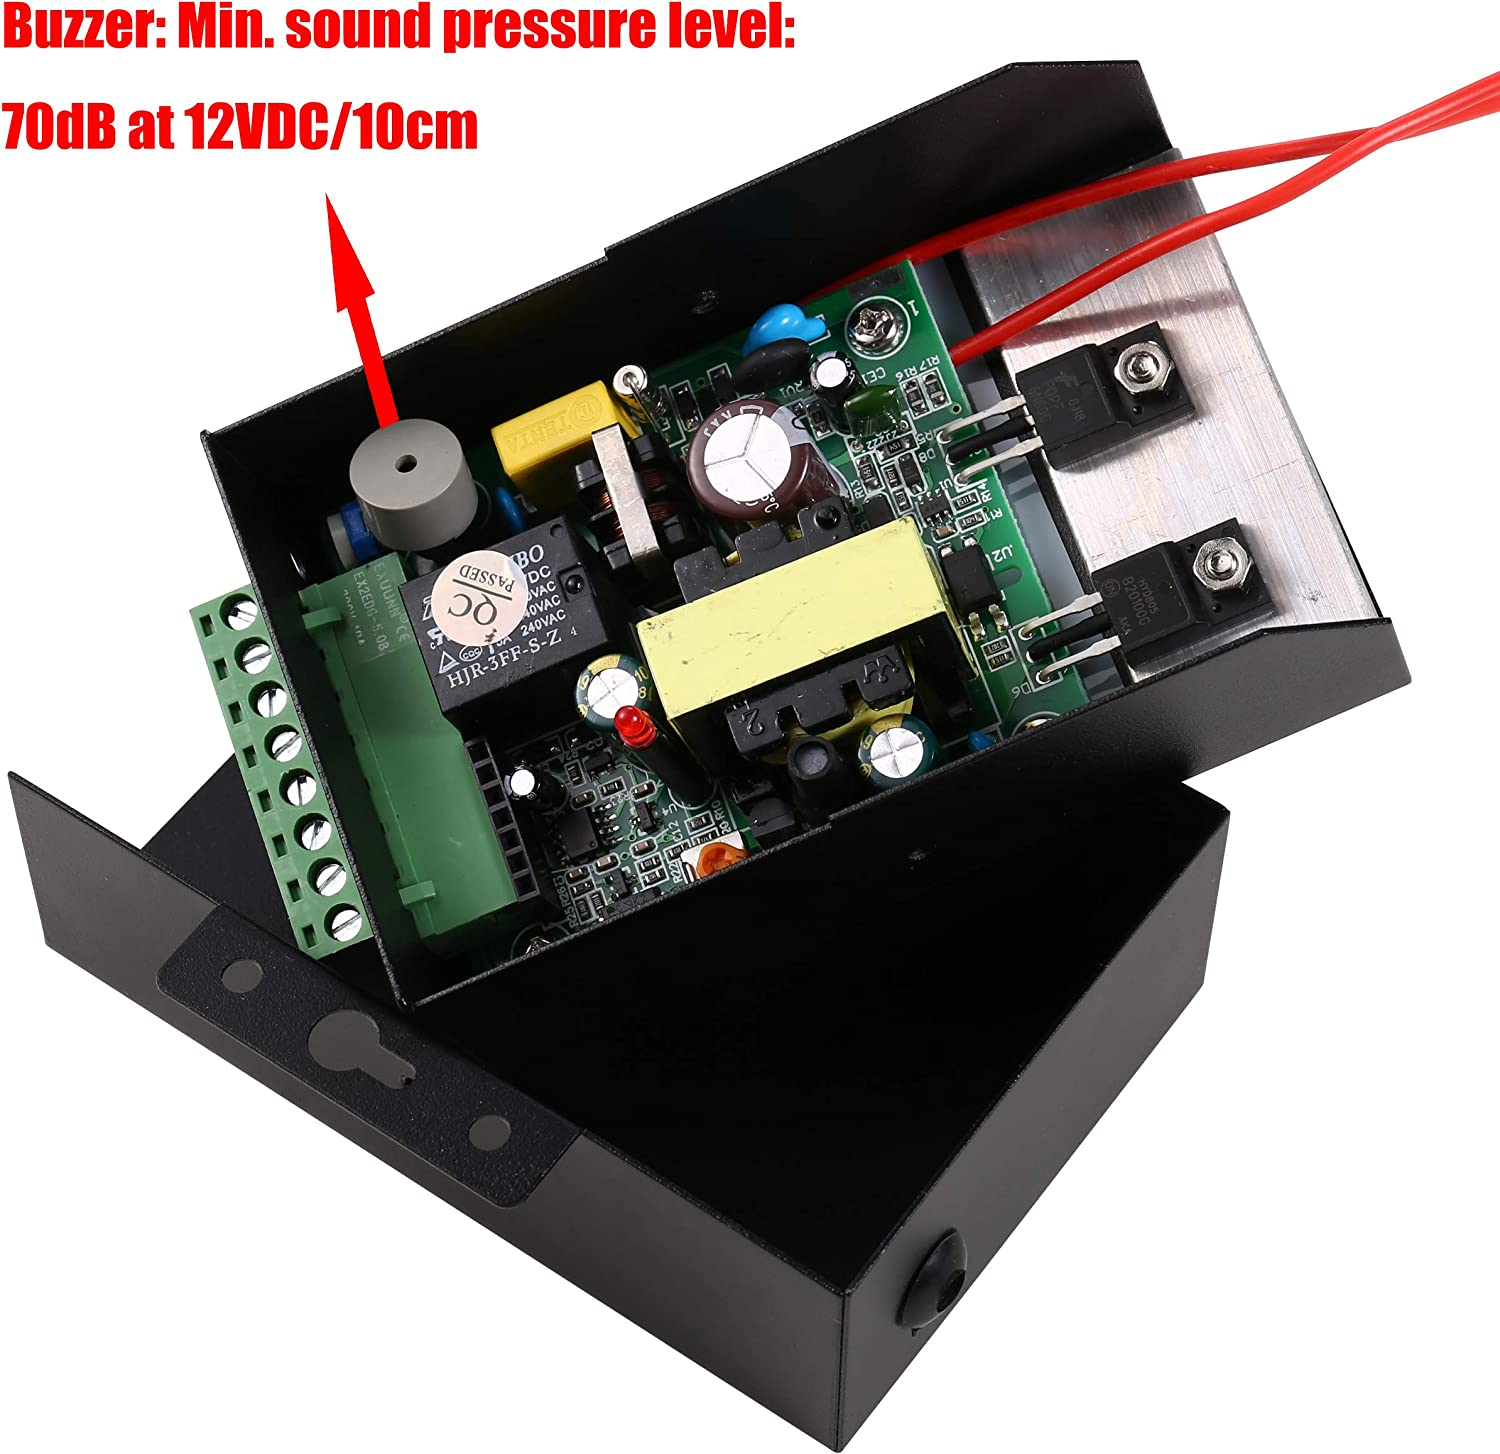 110-240vac To 12vdc Power Supply Controller Built-in Buzzer For Access Control System & Intercom Camera Home & Kitchen